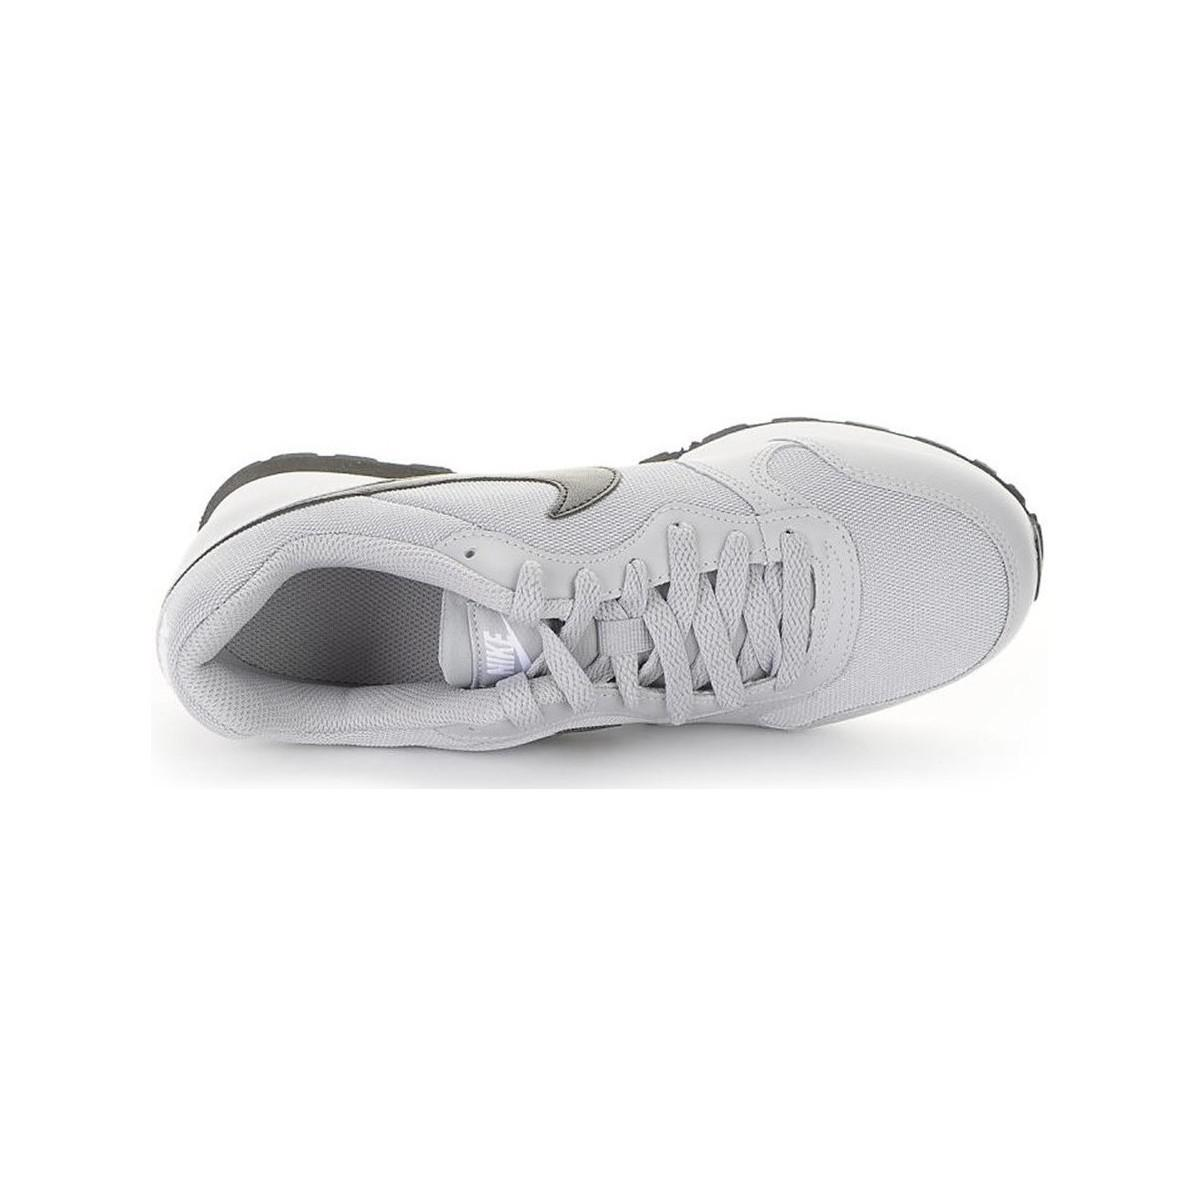 Nike Md Runner 2 Gs Women's Shoes (trainers) In White